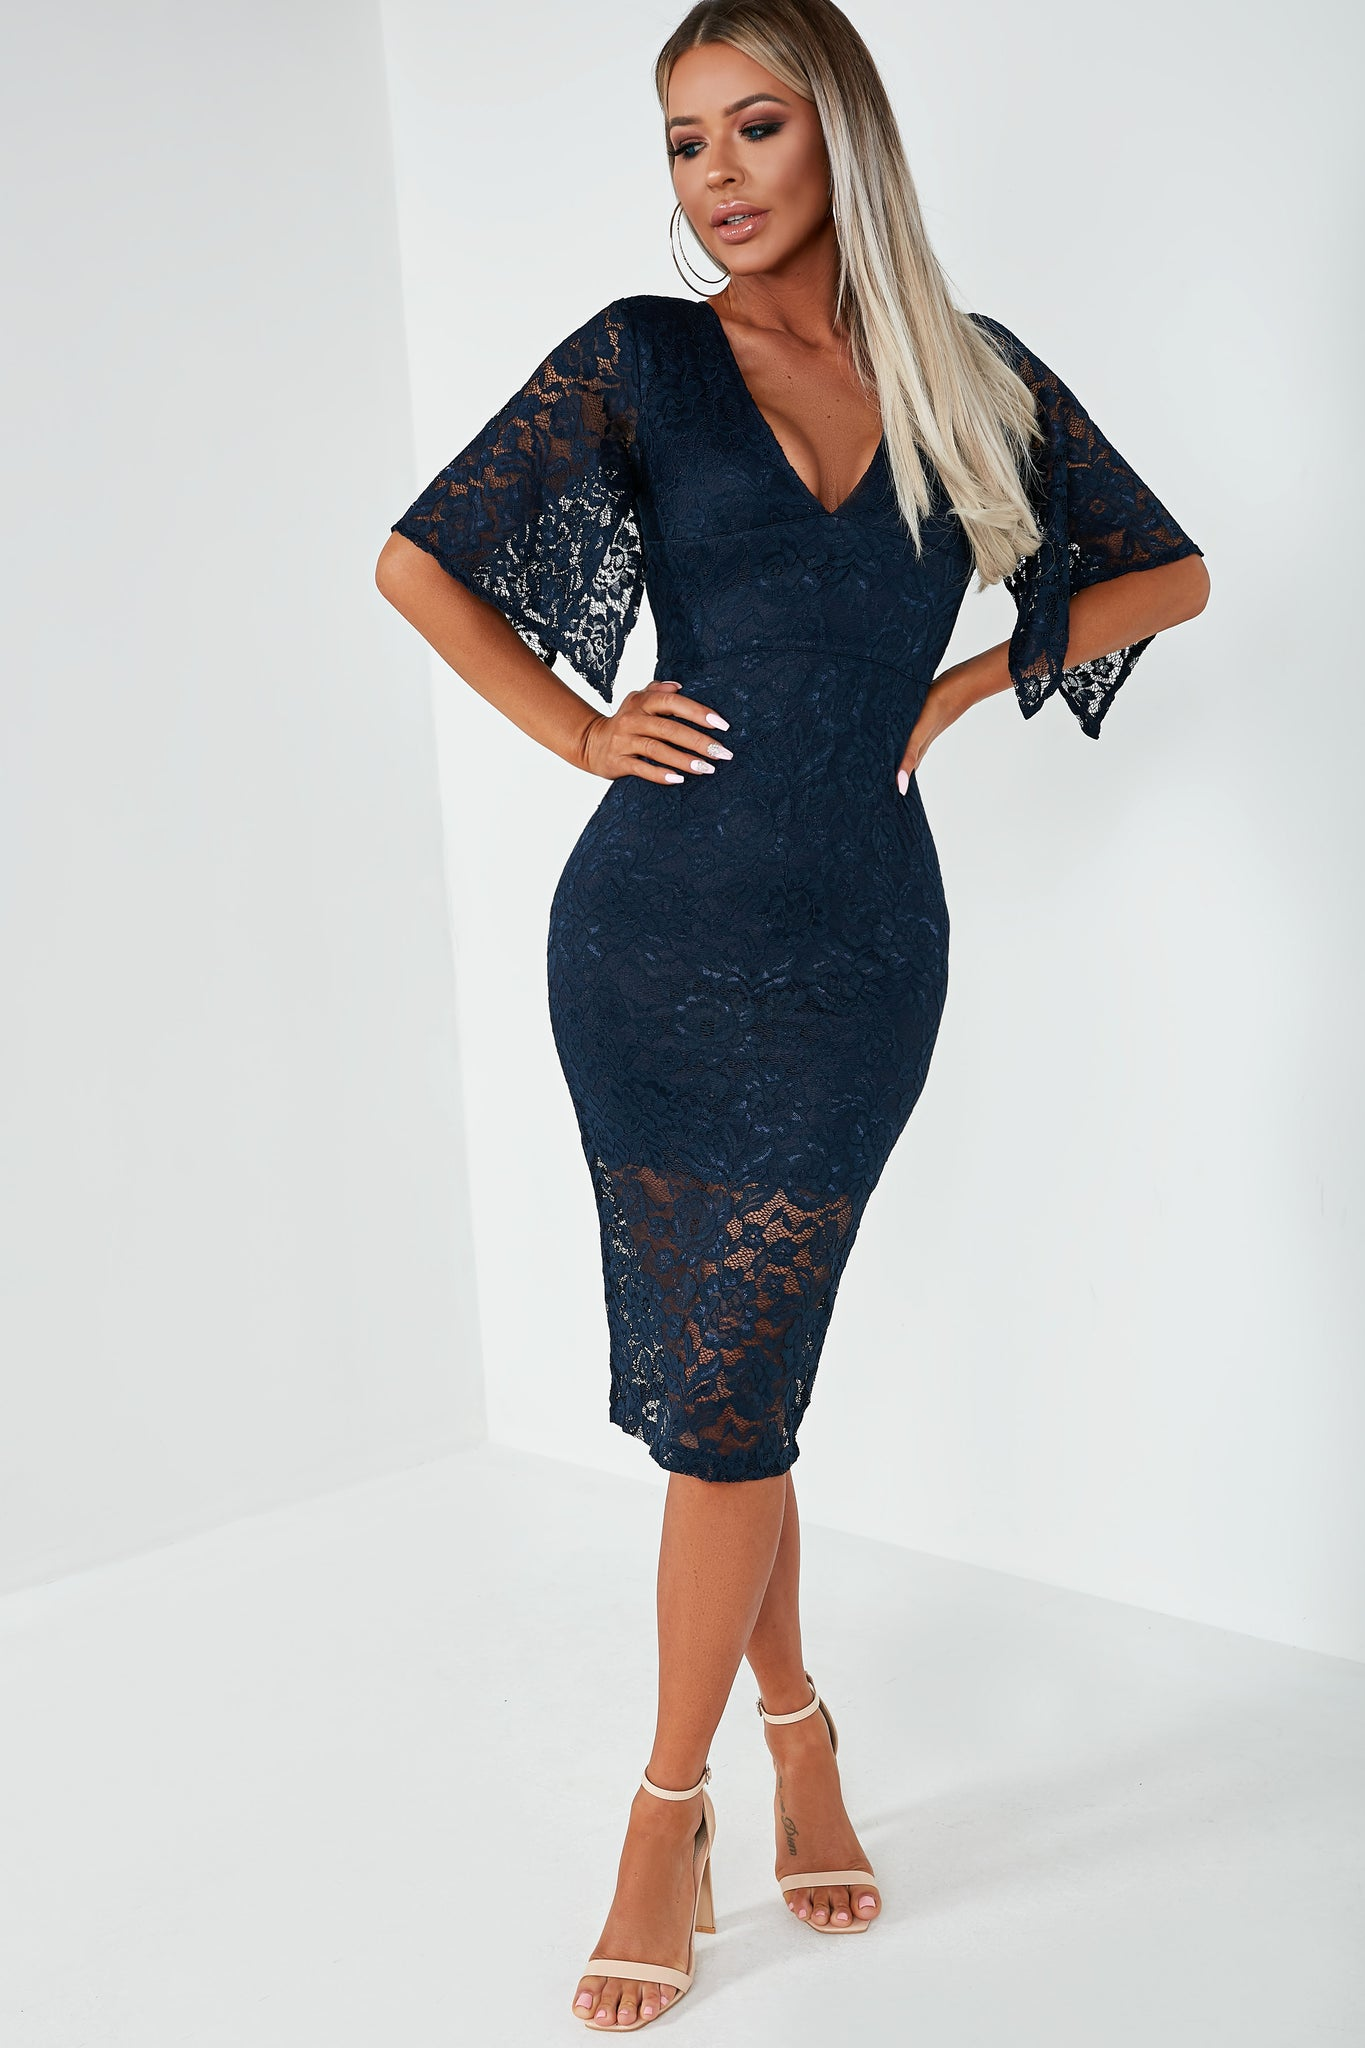 00661c4d0f24 Teah Navy Bell Sleeve Lace Dress. €41.99. Previous